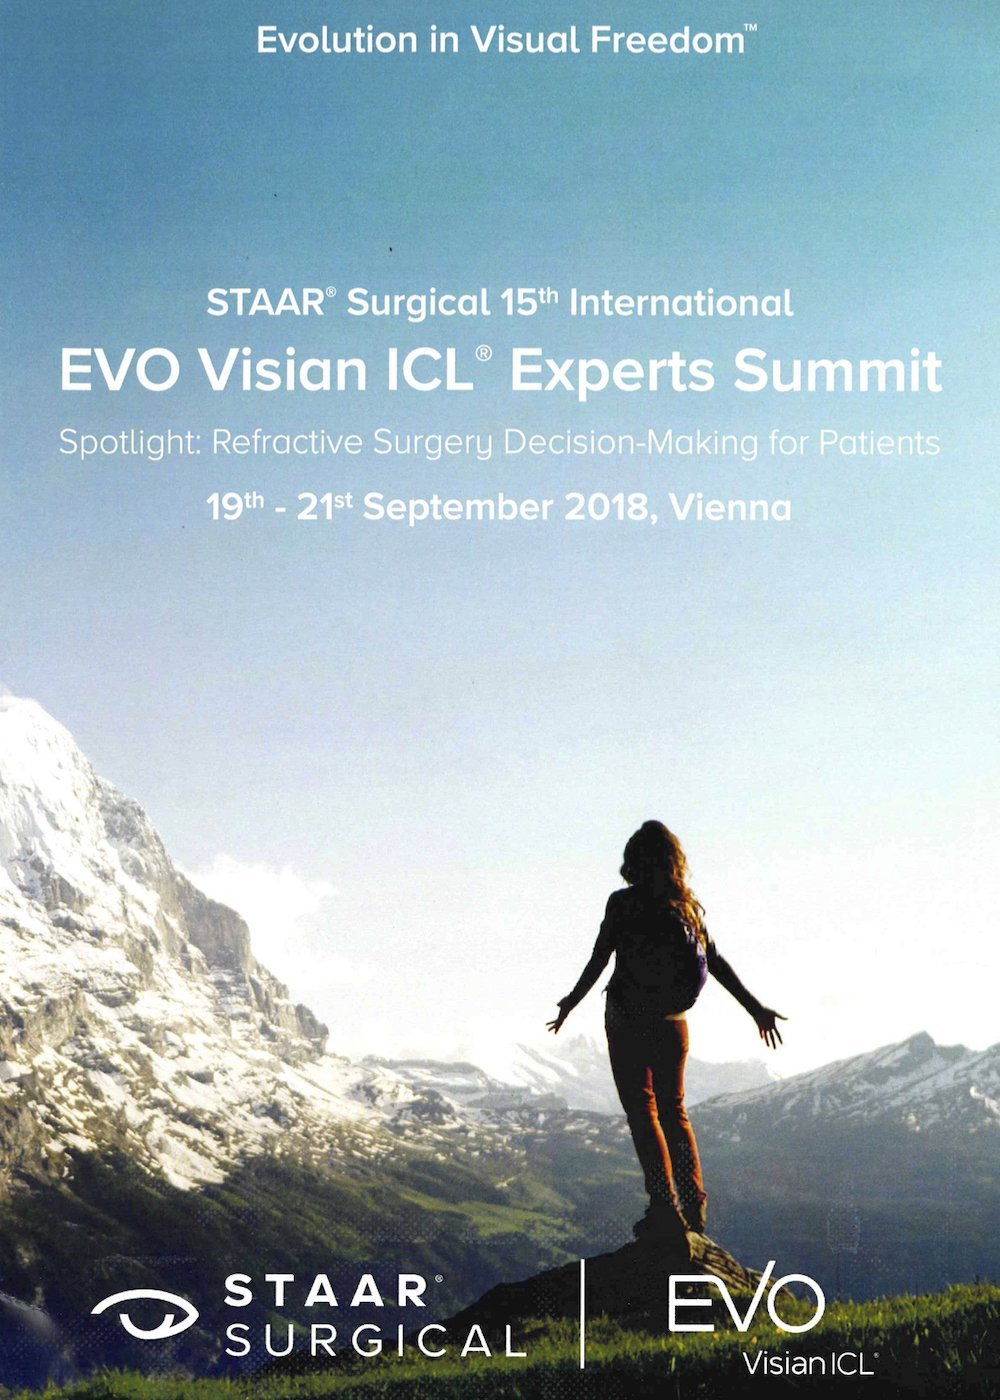 staar surgical 15th international evo visian icl experts summit 1